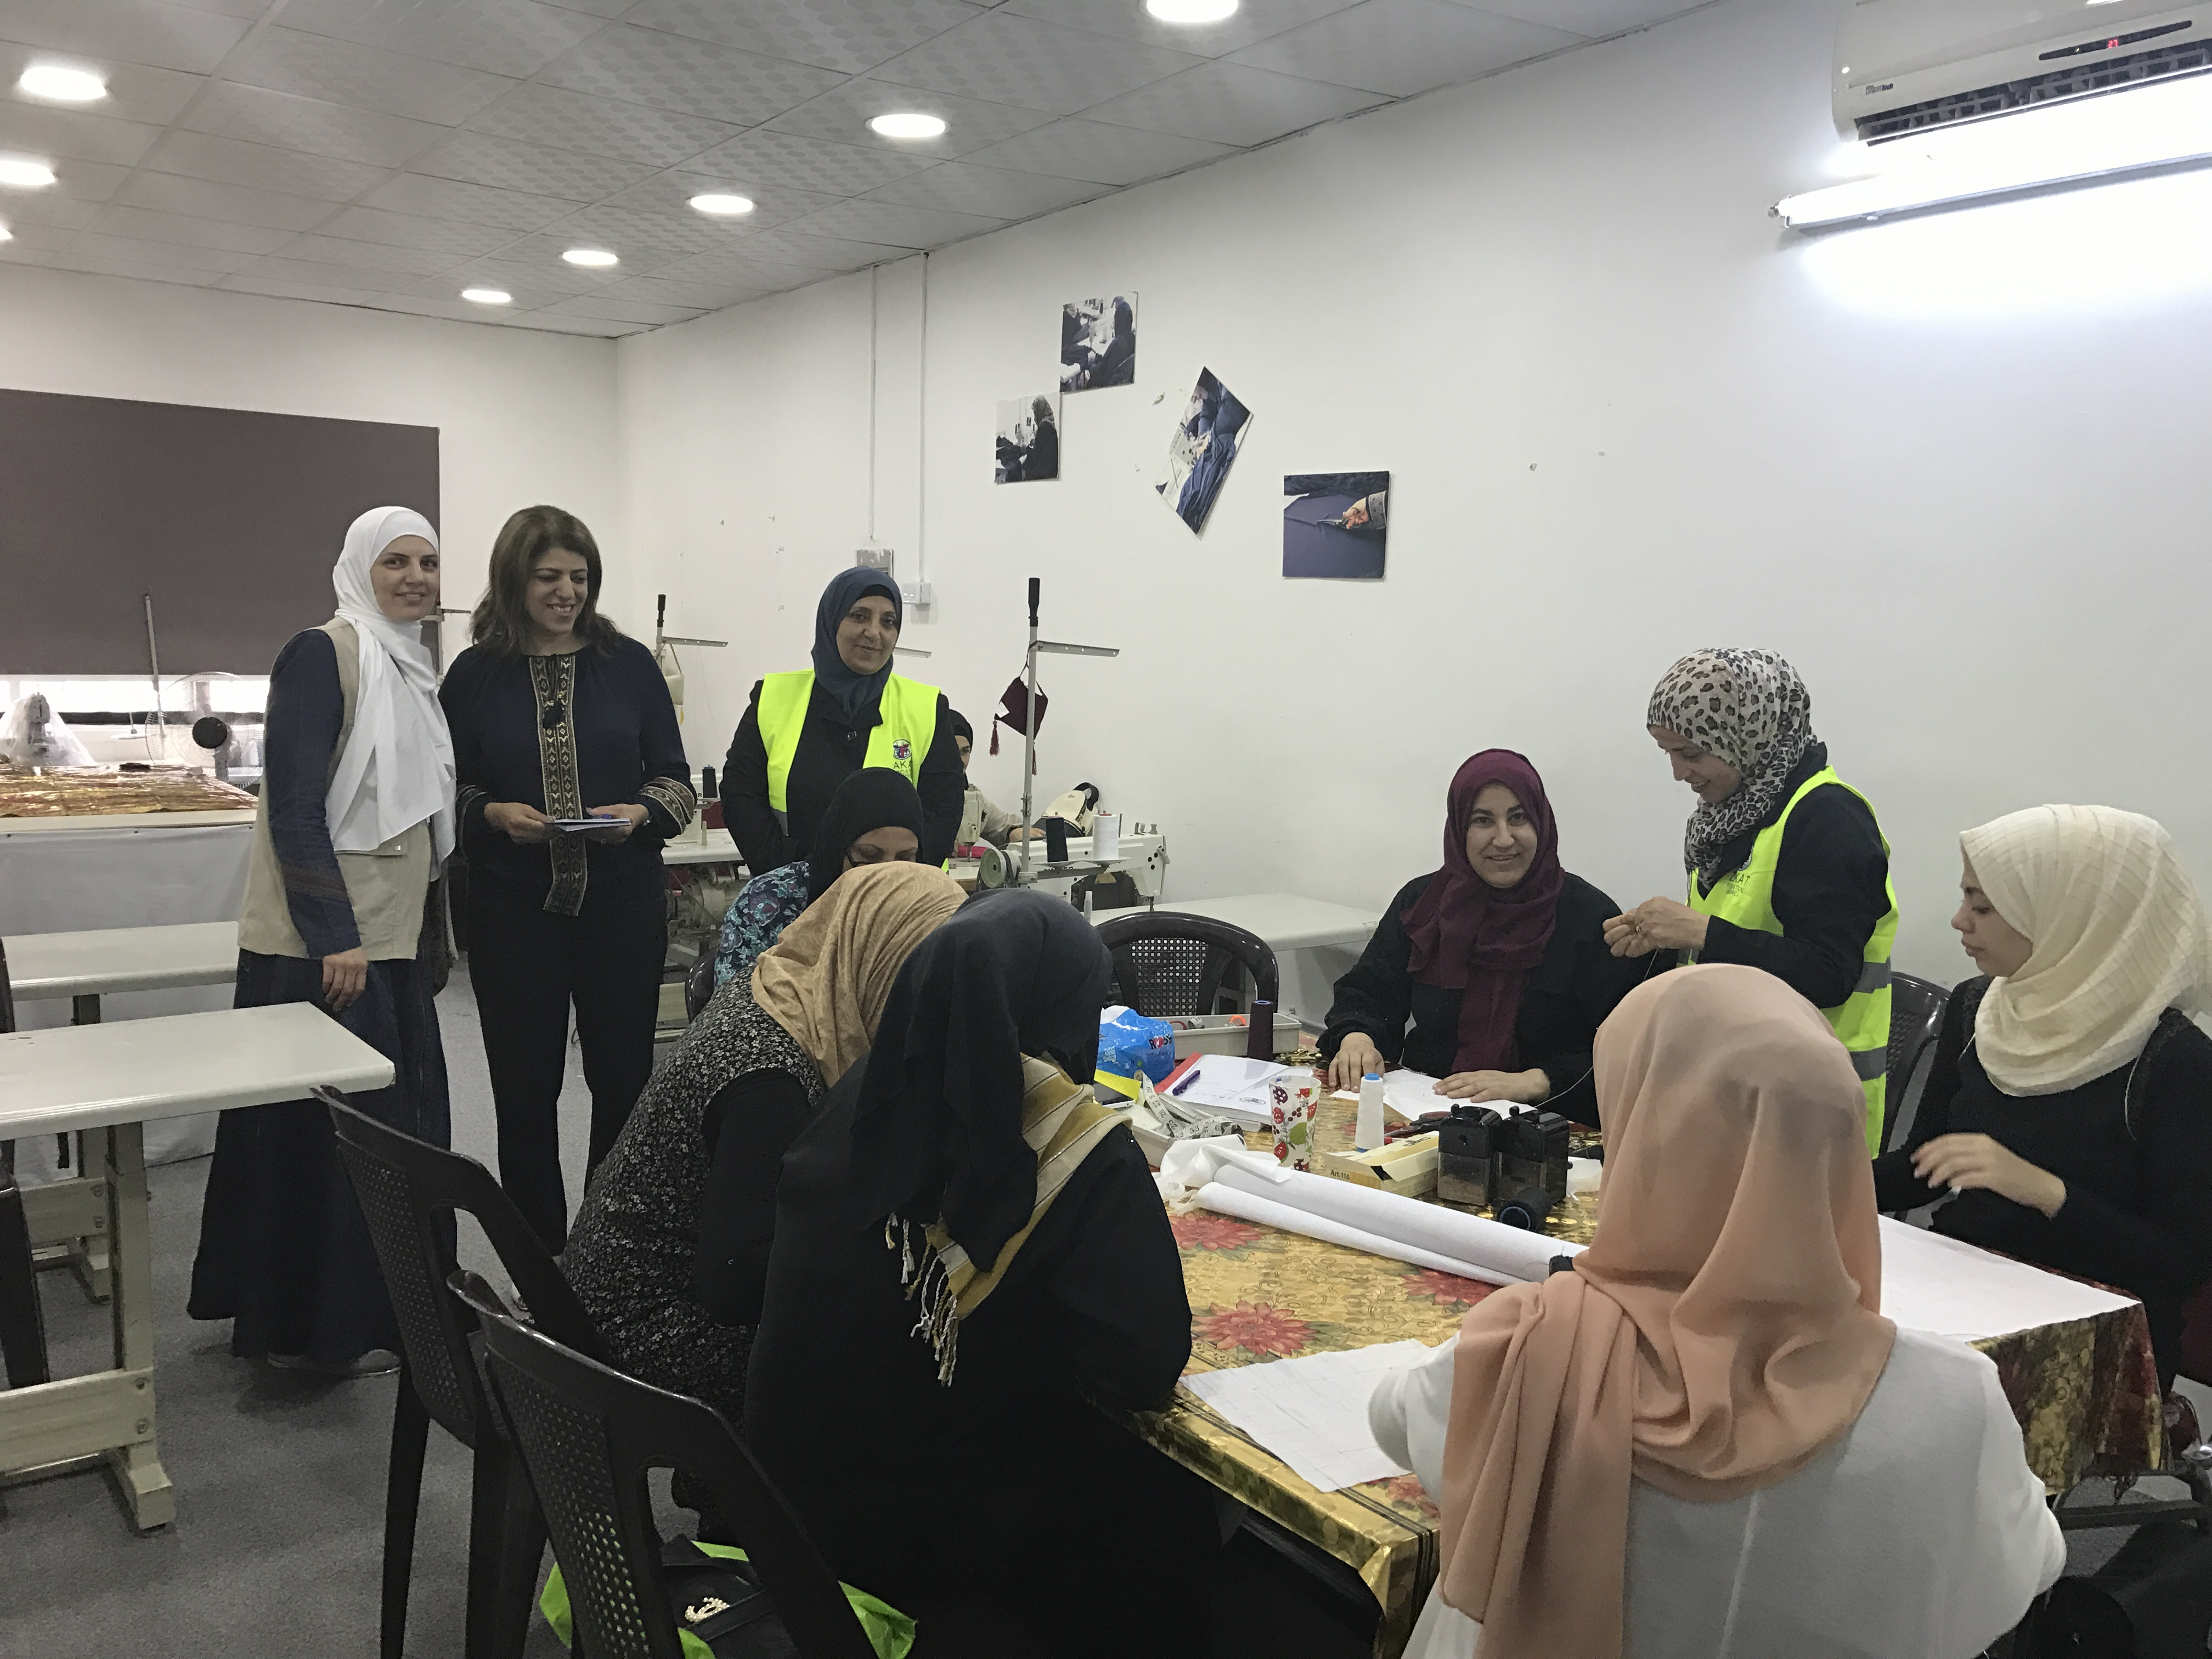 The VTC Assists Many Syrian Refugee Women Resettling In Jordan By Offering Courses Sewing Knitting English And Computer Science